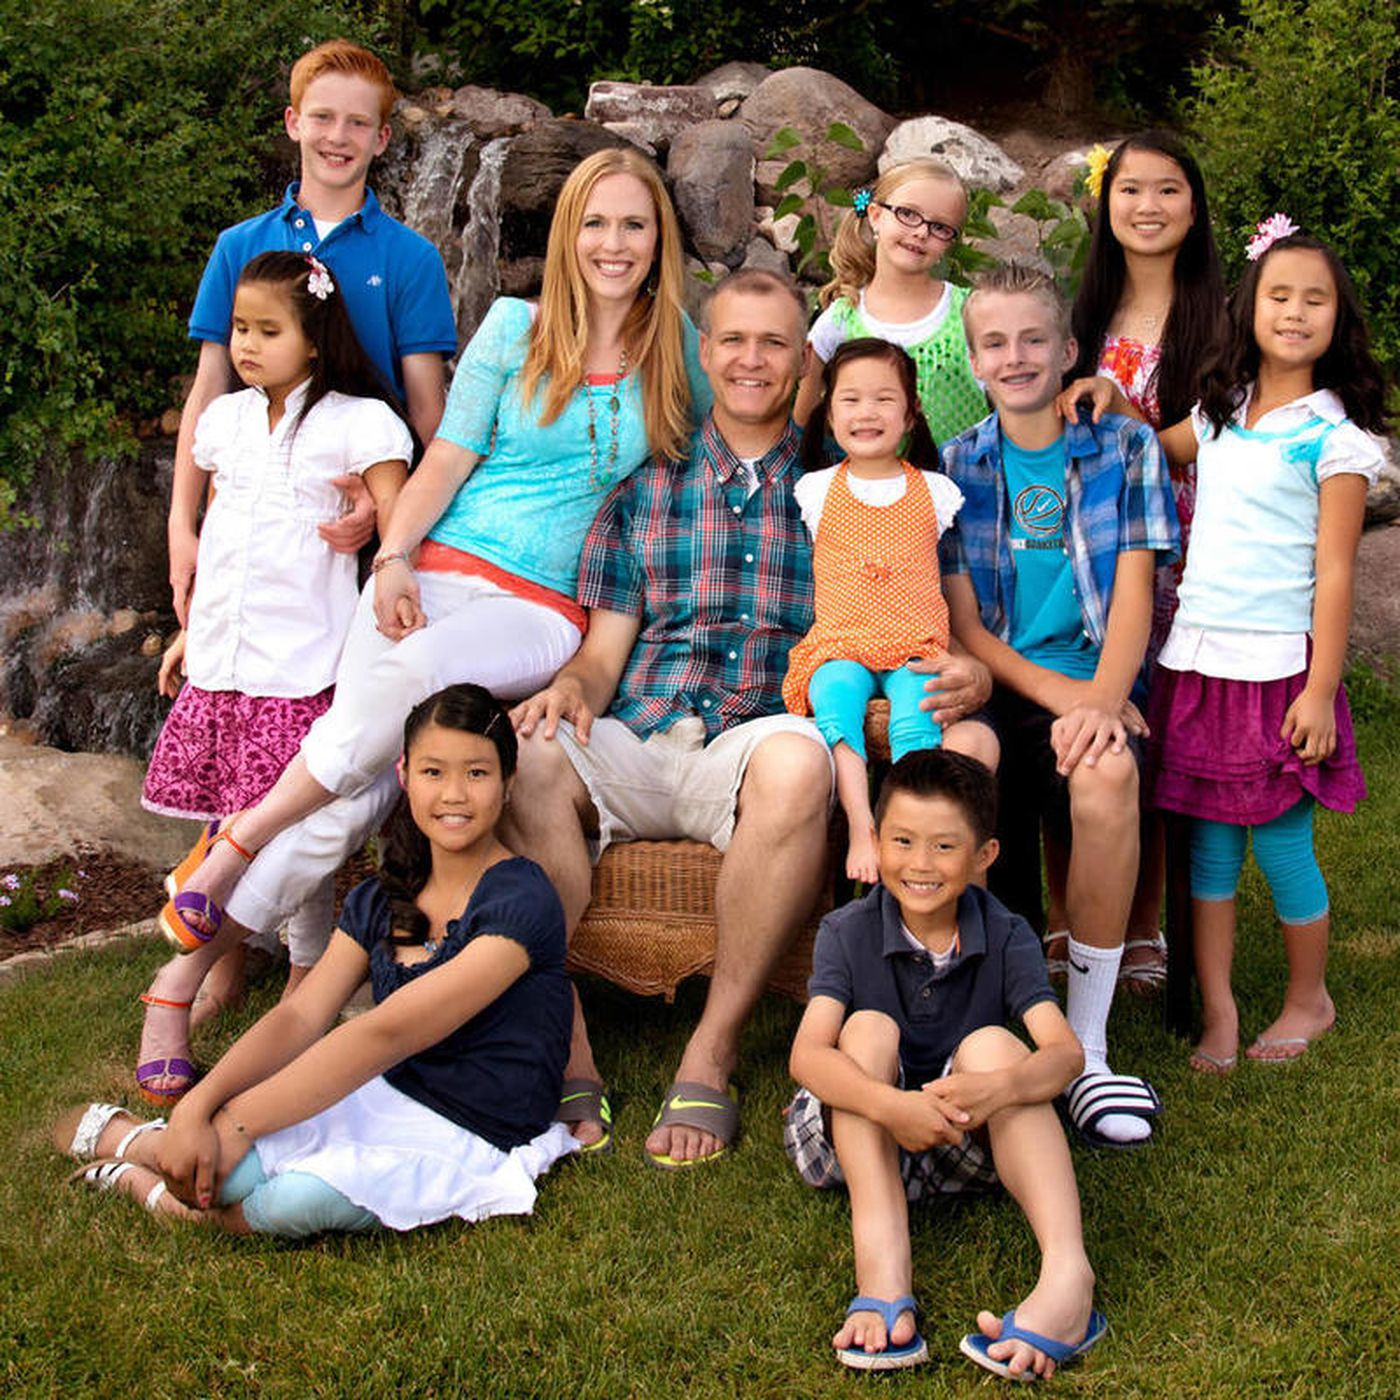 Herriman family with 10 kids, 7 adopted with special needs